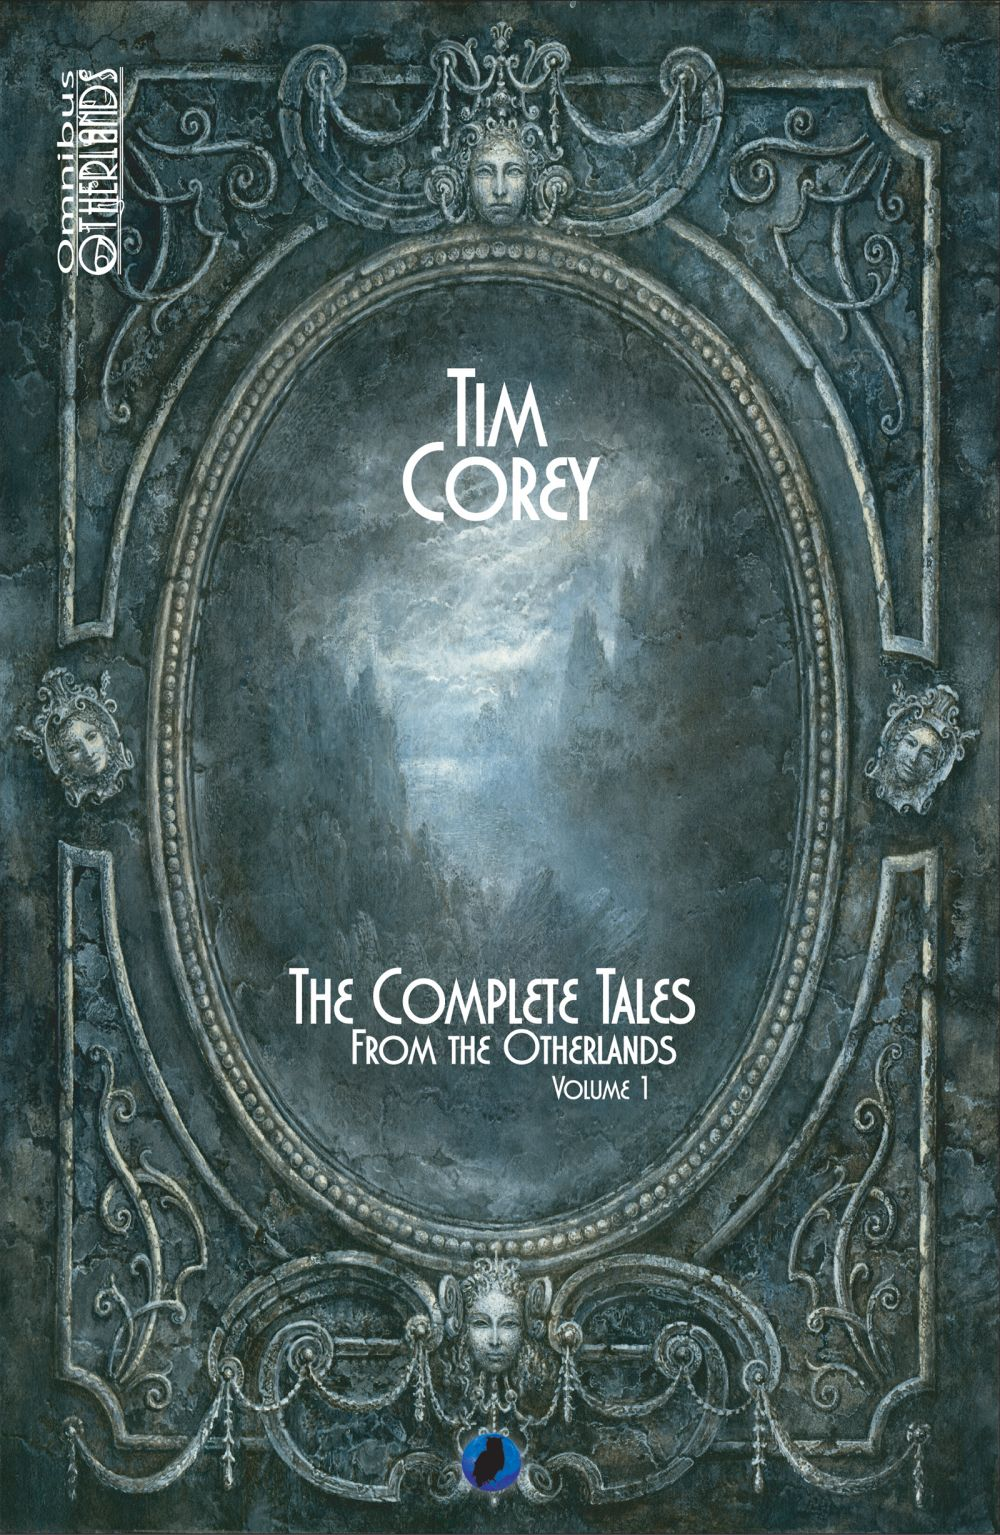 The complete Tales from the Otherlands